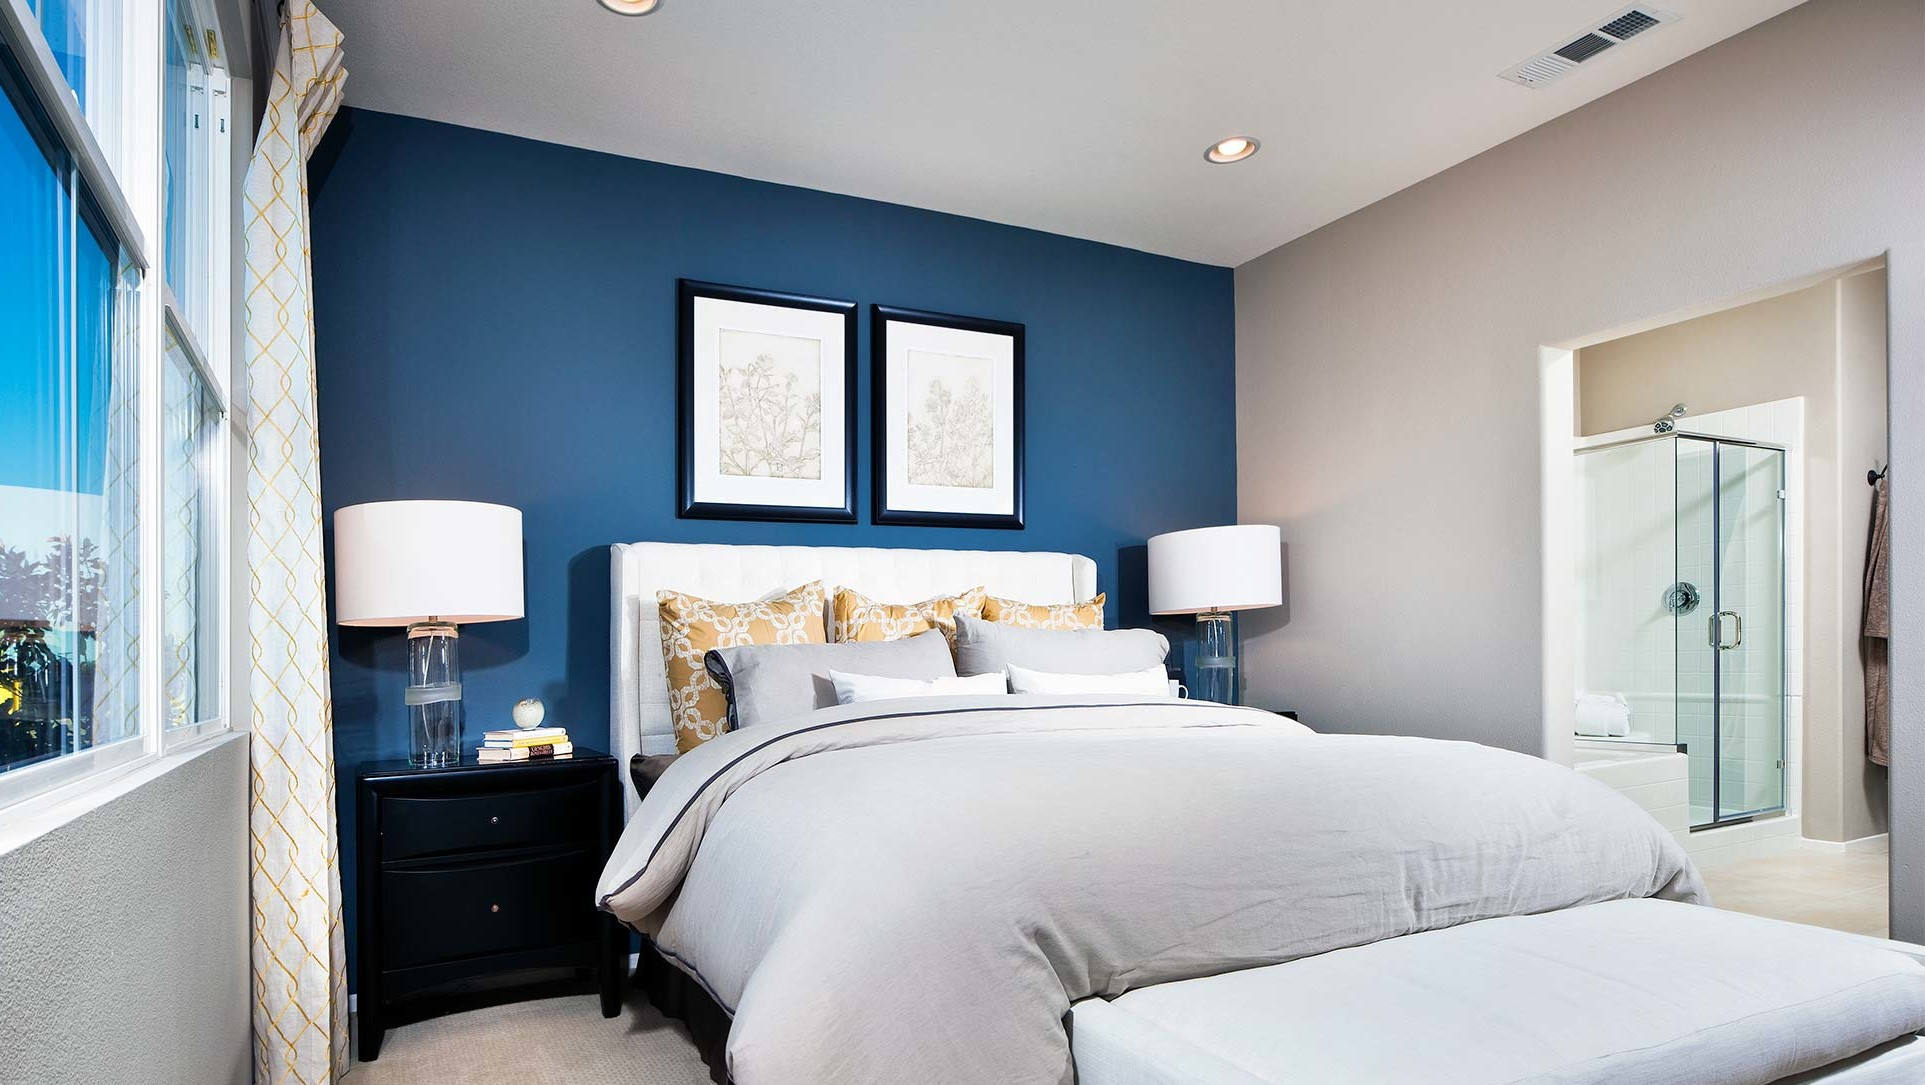 Best ideas about Painting An Accent Wall . Save or Pin You re Doing It Wrong Painting an Accent Wall Now.